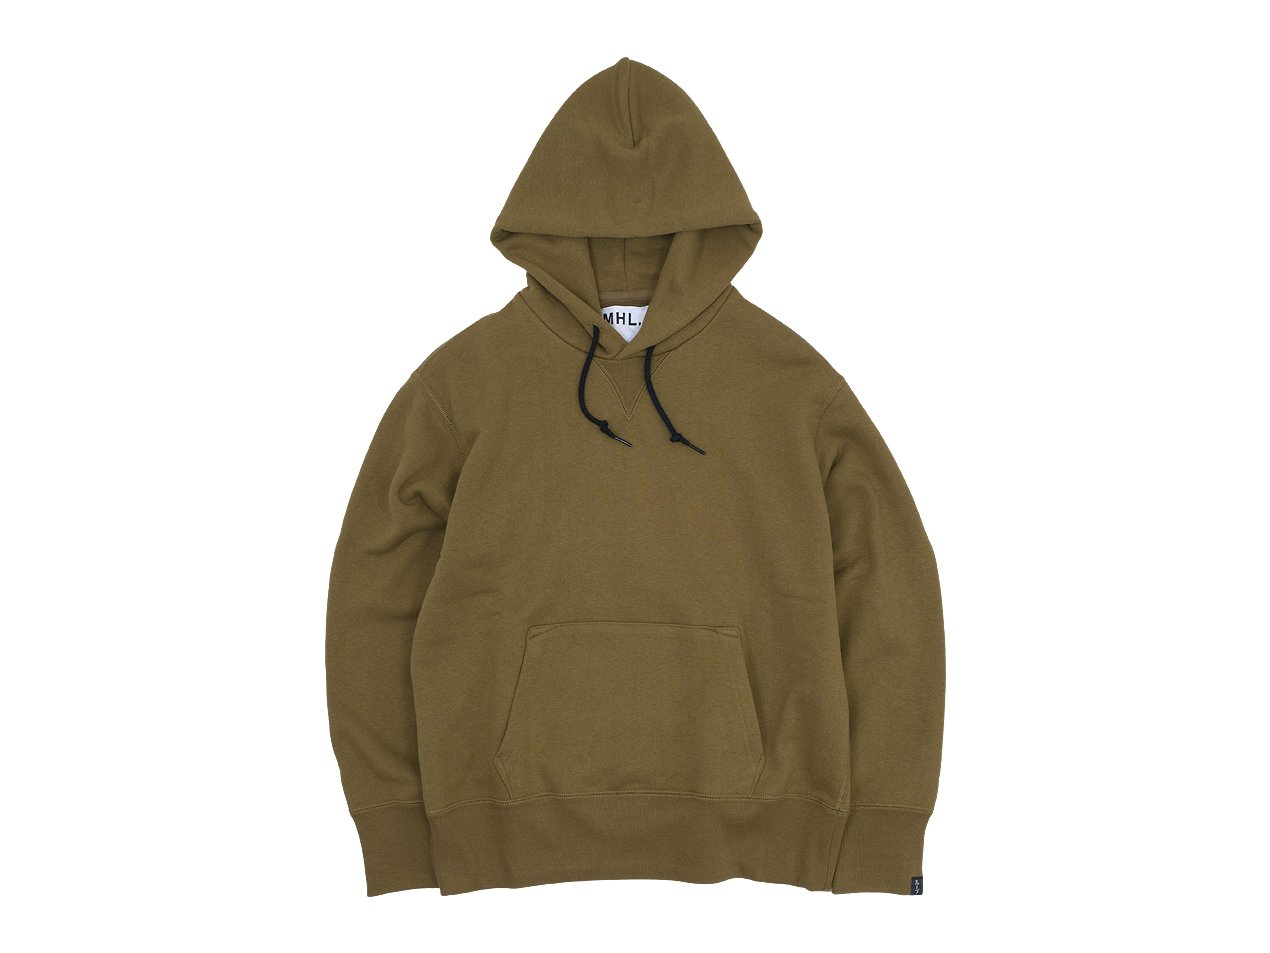 MHL. LIGHT LOOPBACK COTTON HOODED PARKA 44BEIGE 〔レディース〕